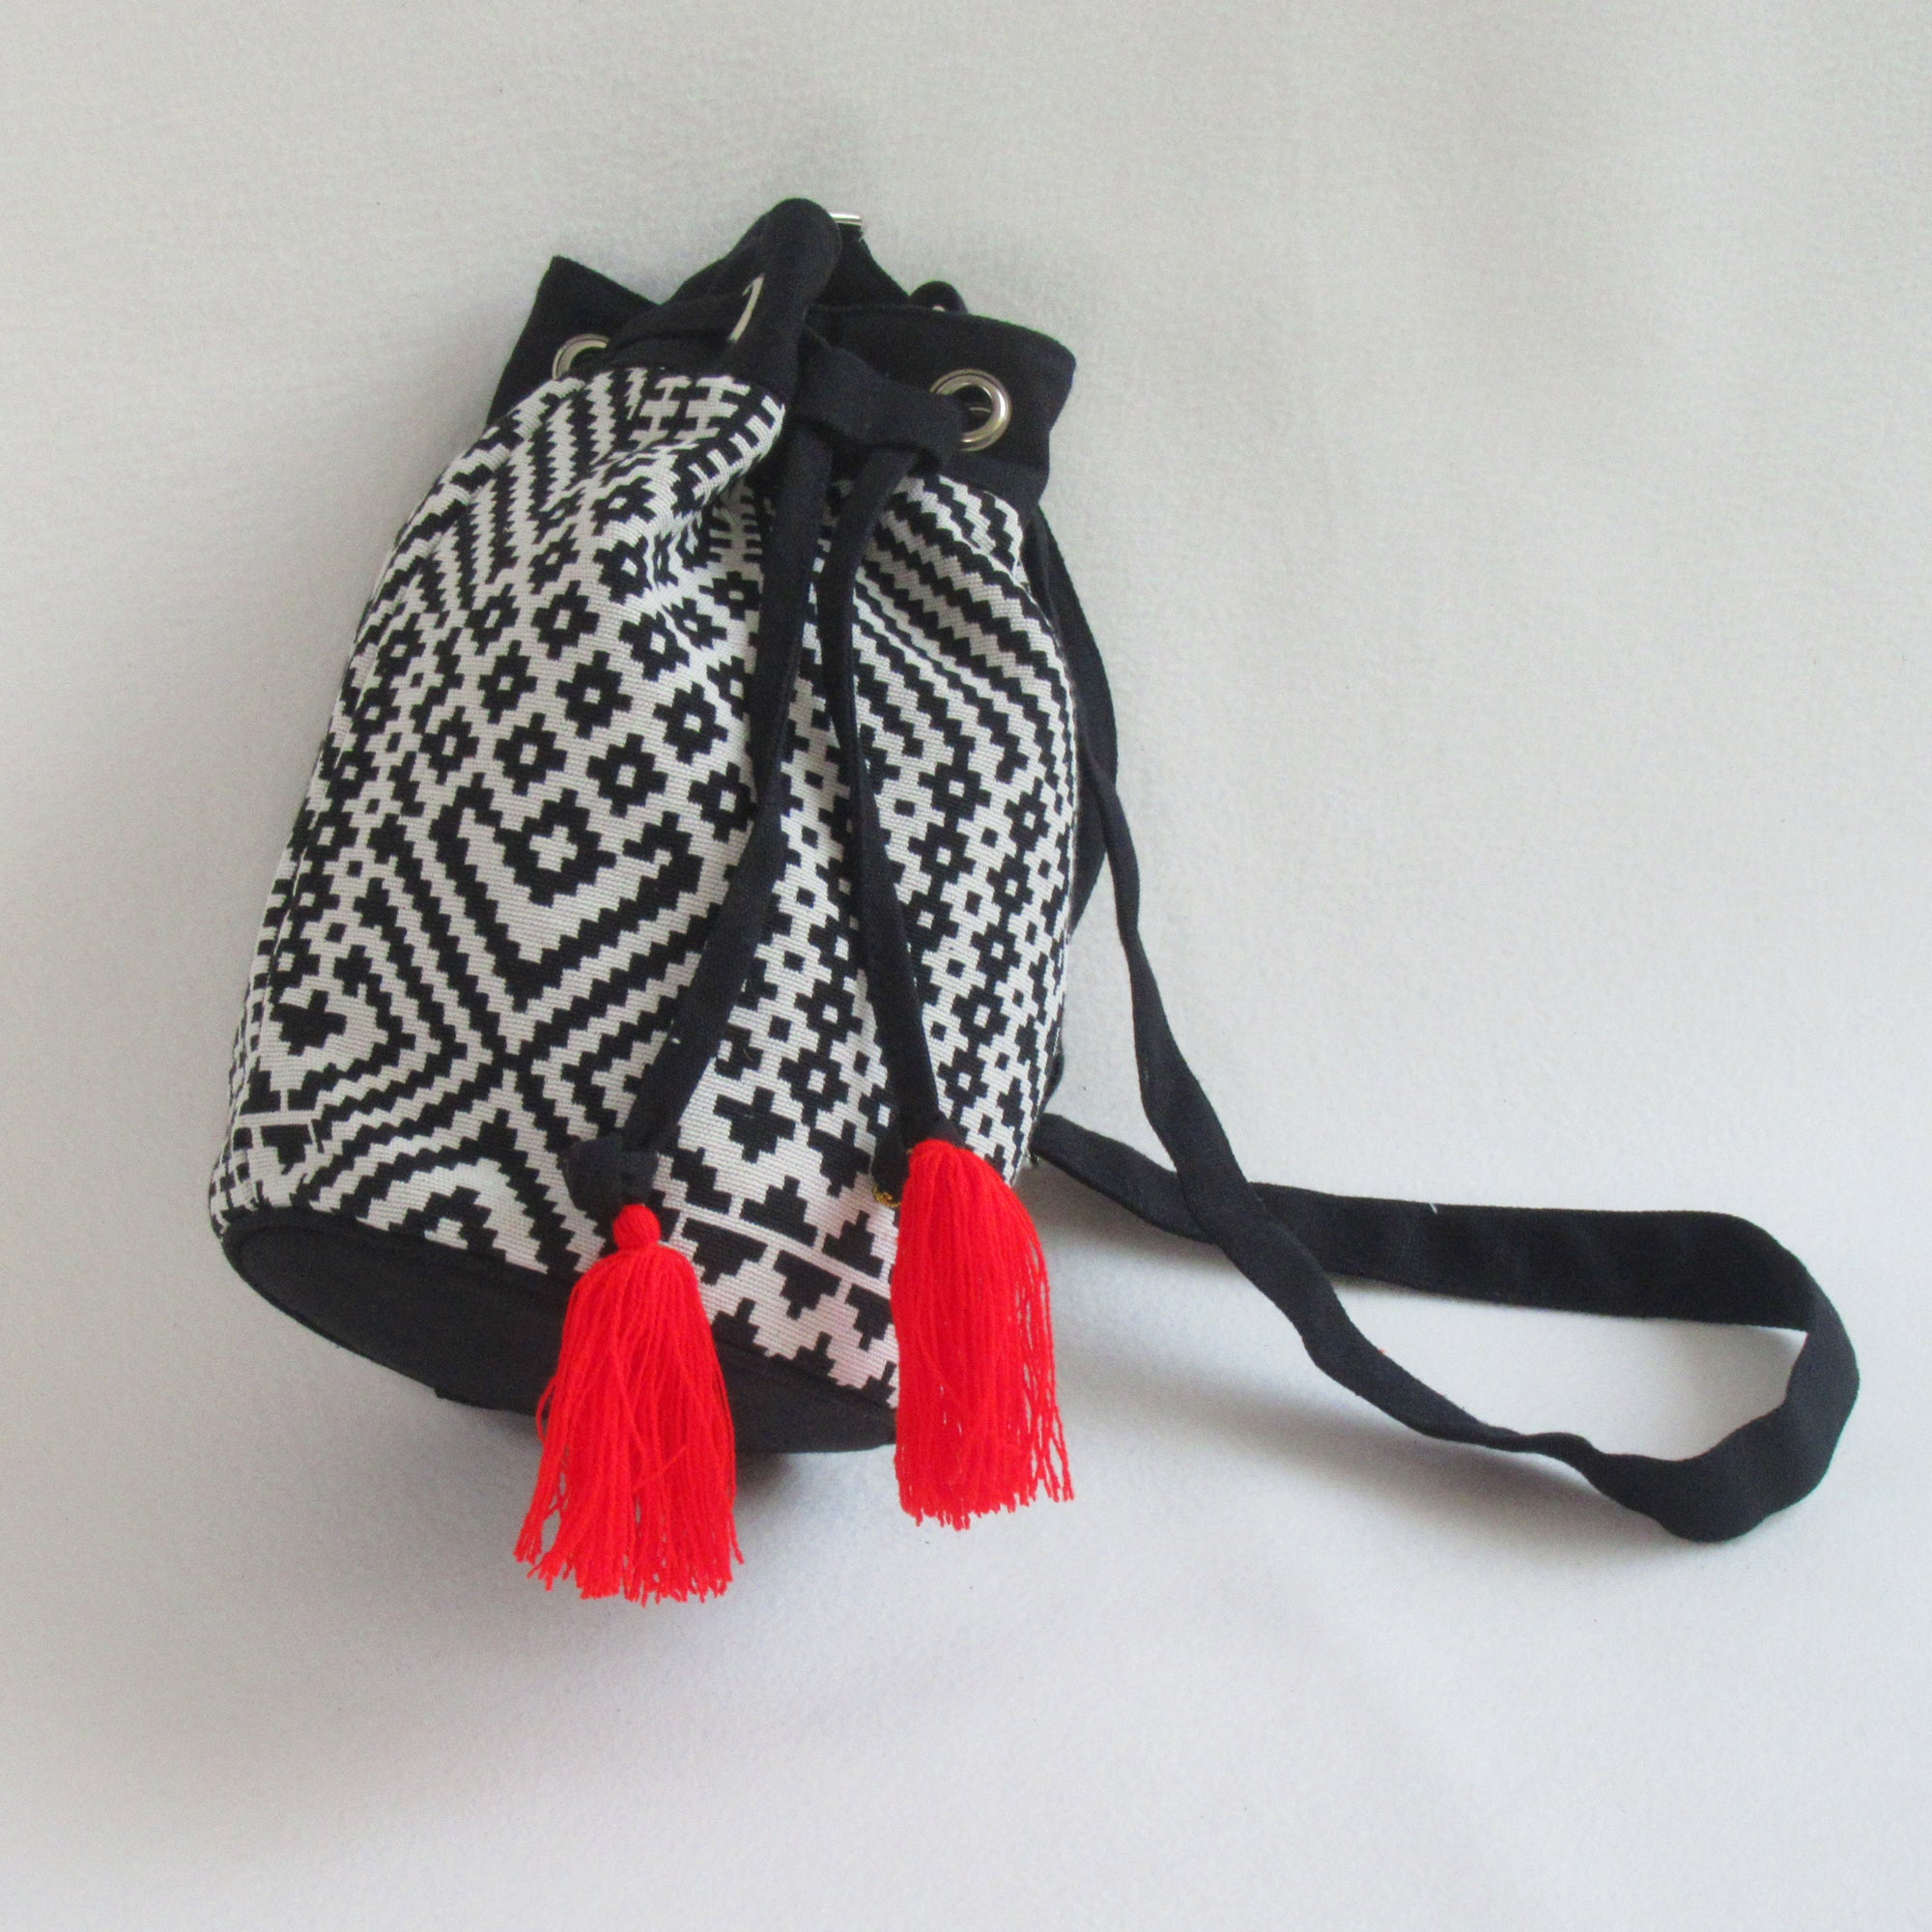 Jacquard Printed BUCKET / SLING; Drawstring with Tassel